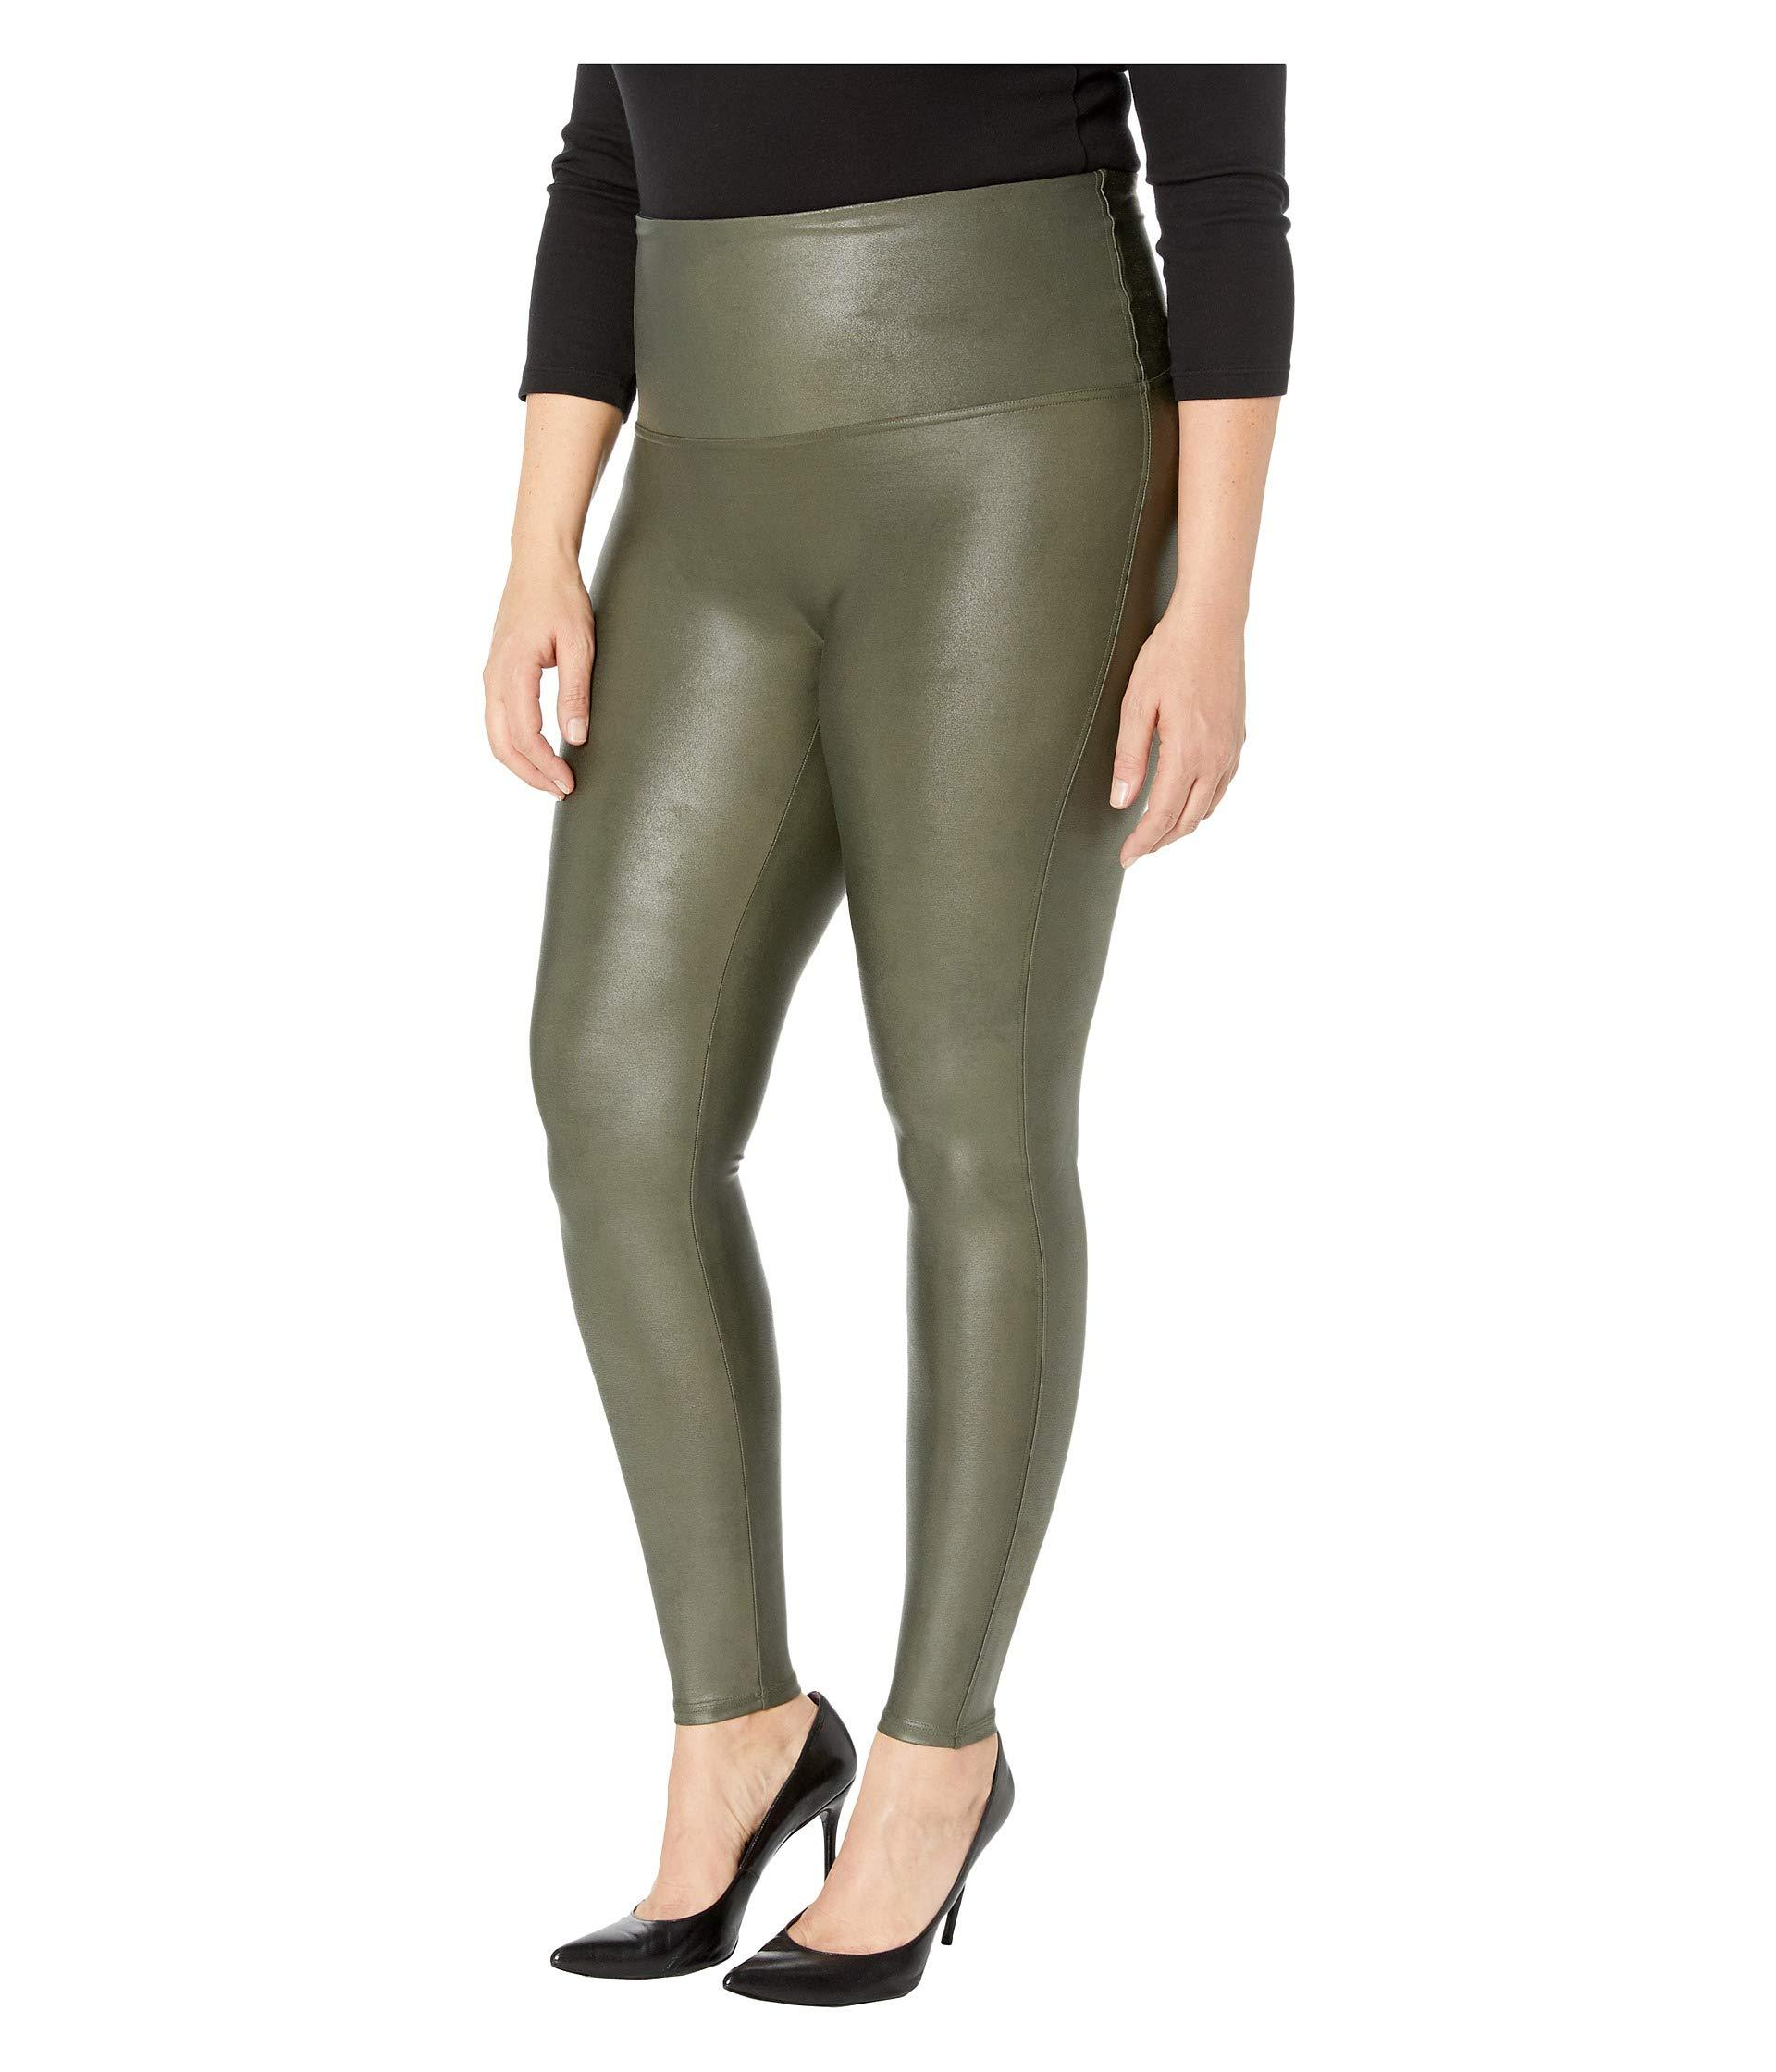 8858293008c Spanx Plus Size Faux Leather Leggings (gunmetal) Women s Clothing in Green  - Lyst